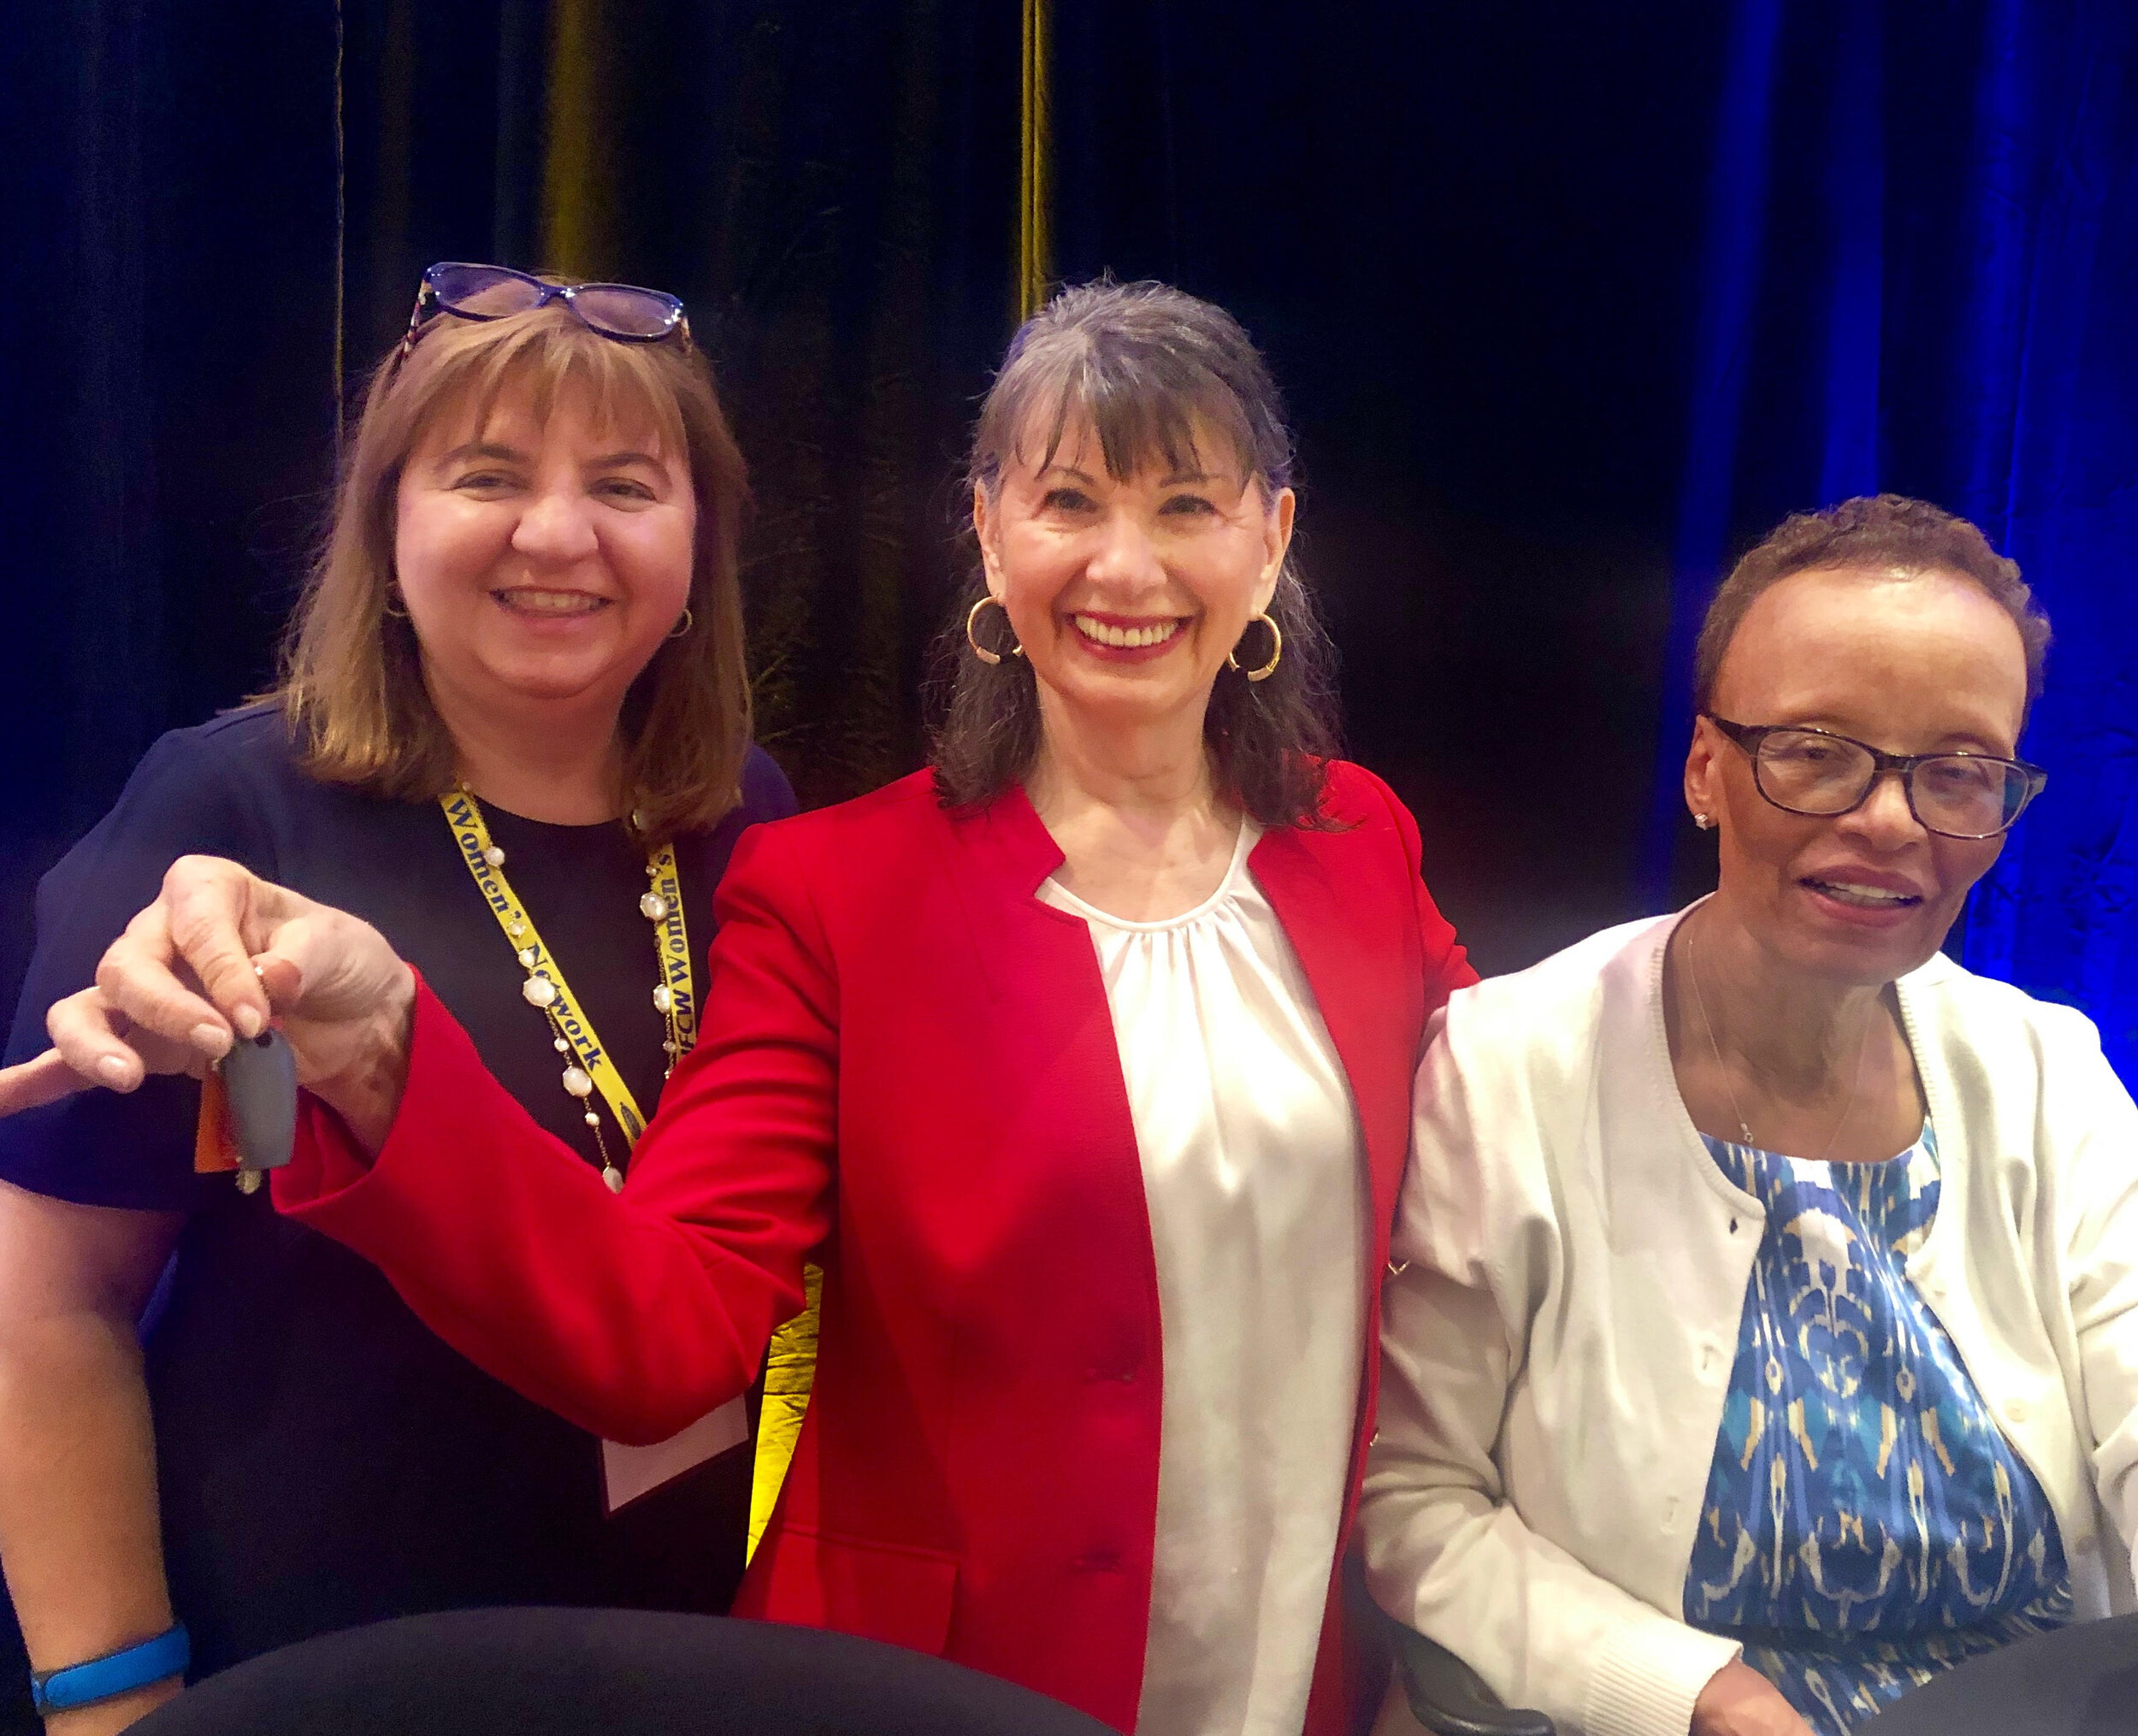 The keys were in my hand…the theme of my speech to the incredible women of UFCW biennial meeting in Orlando. L-R: Deliana Speights, me, Rhonda Nelson.